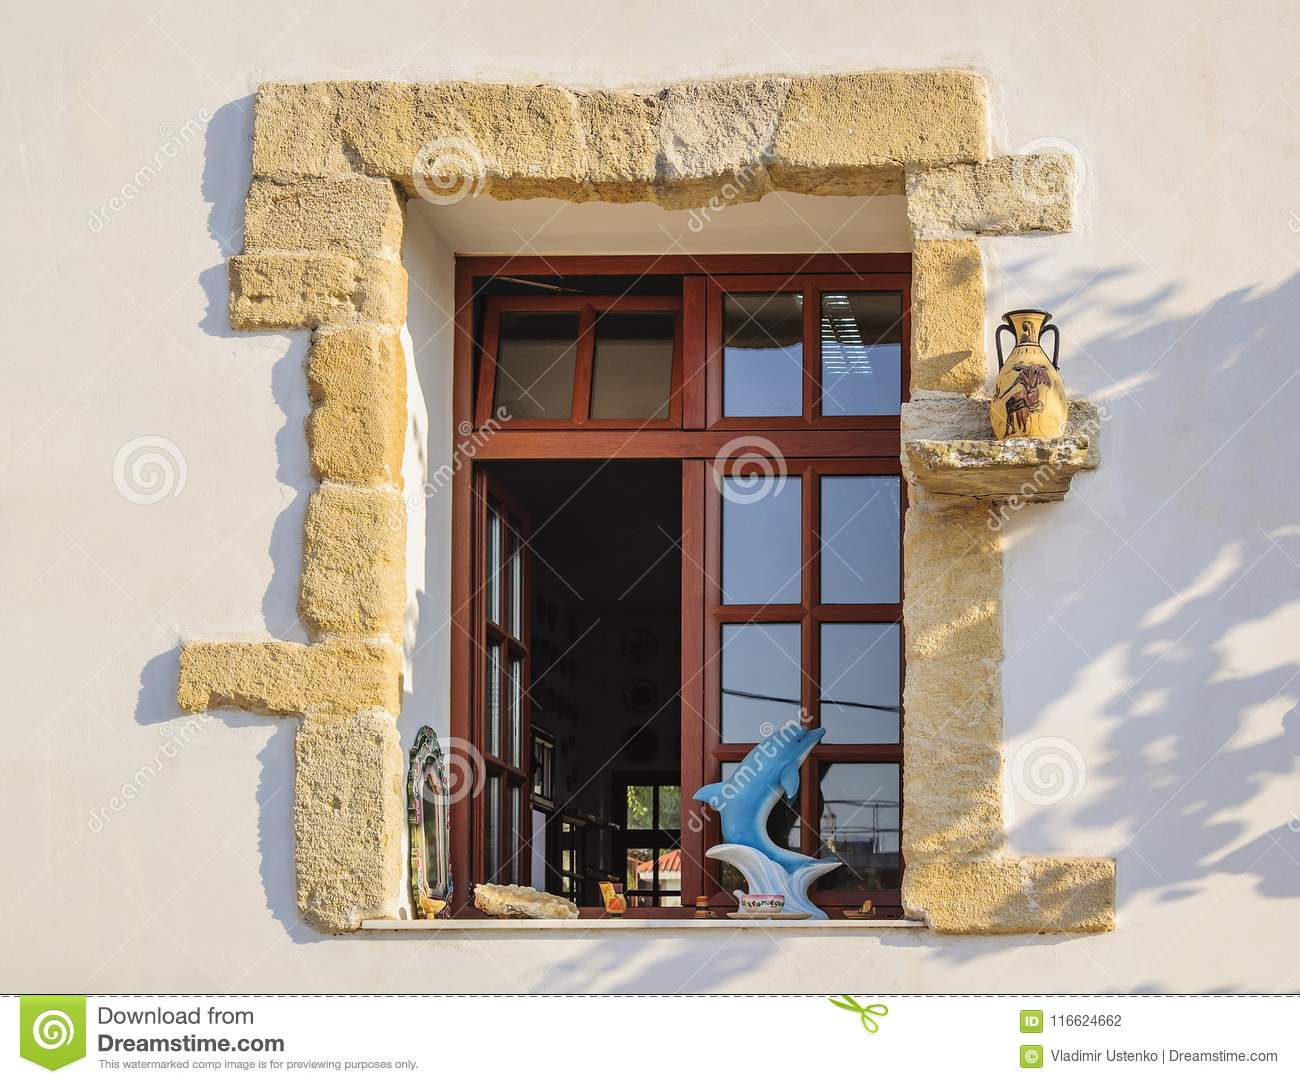 RHODES, GREECE-August 24, 2015: Window in a modern ceramic pottery workshop with elements of decoration